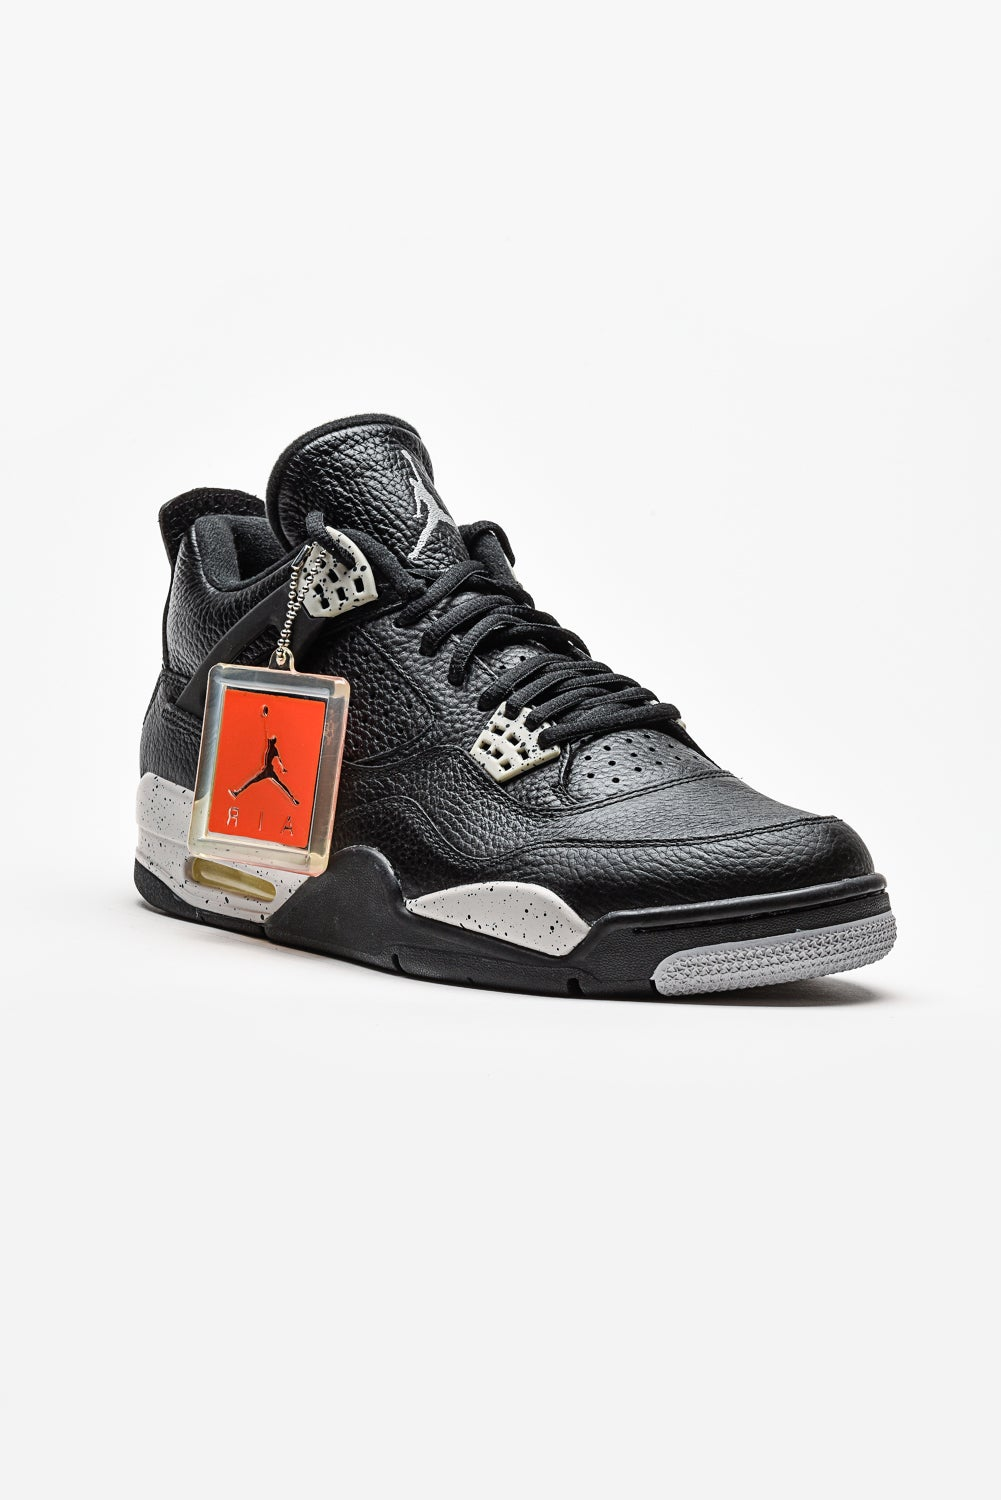 best service 1fe90 9692d Image of Air Jordan 4 Retro - Oreo